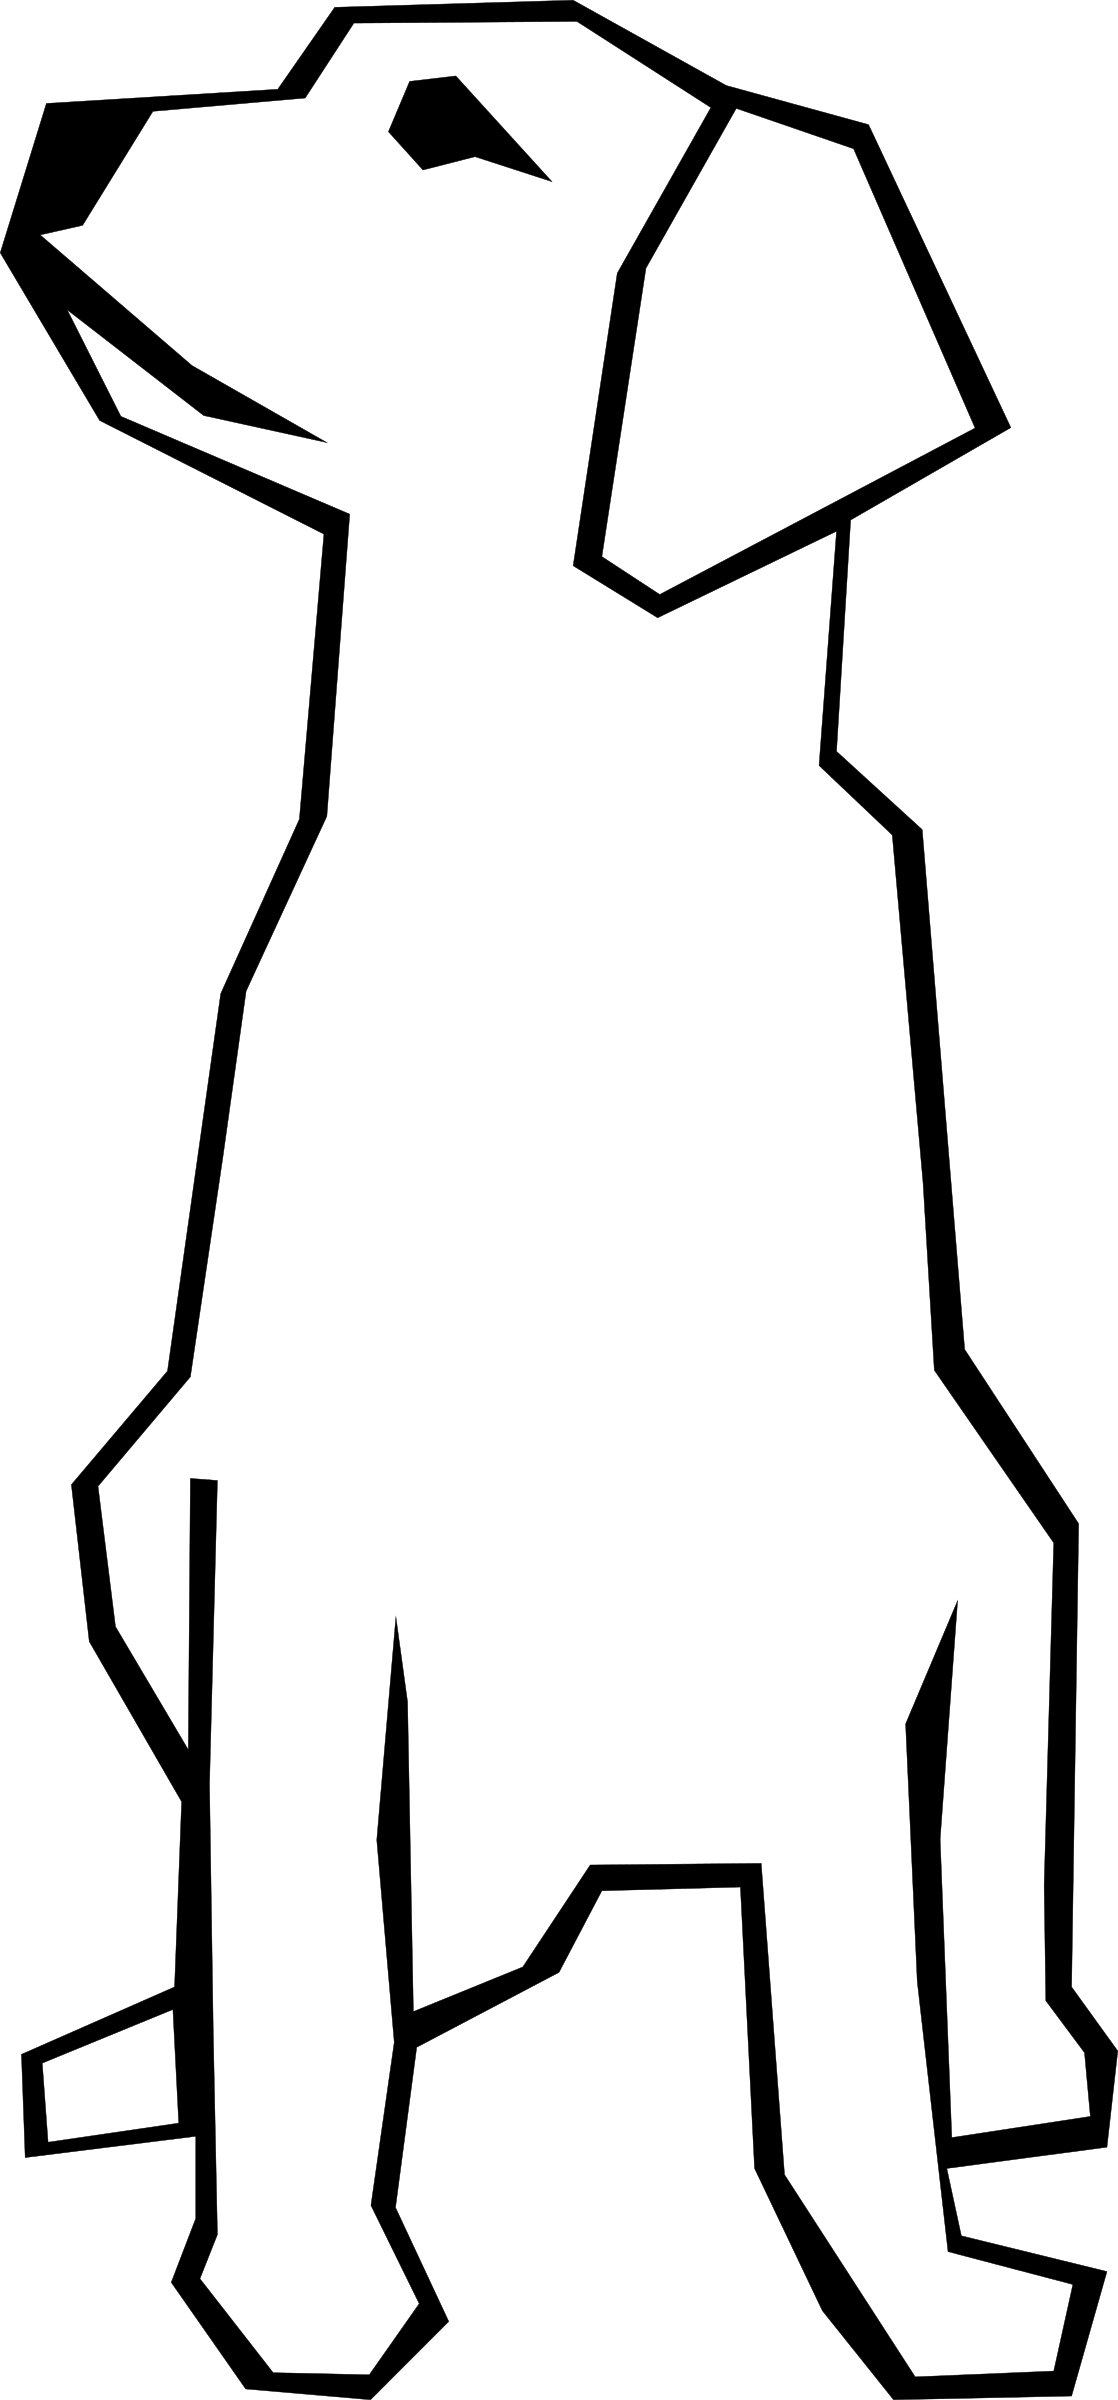 Clipart dog big image. G drawing simple clip art free stock